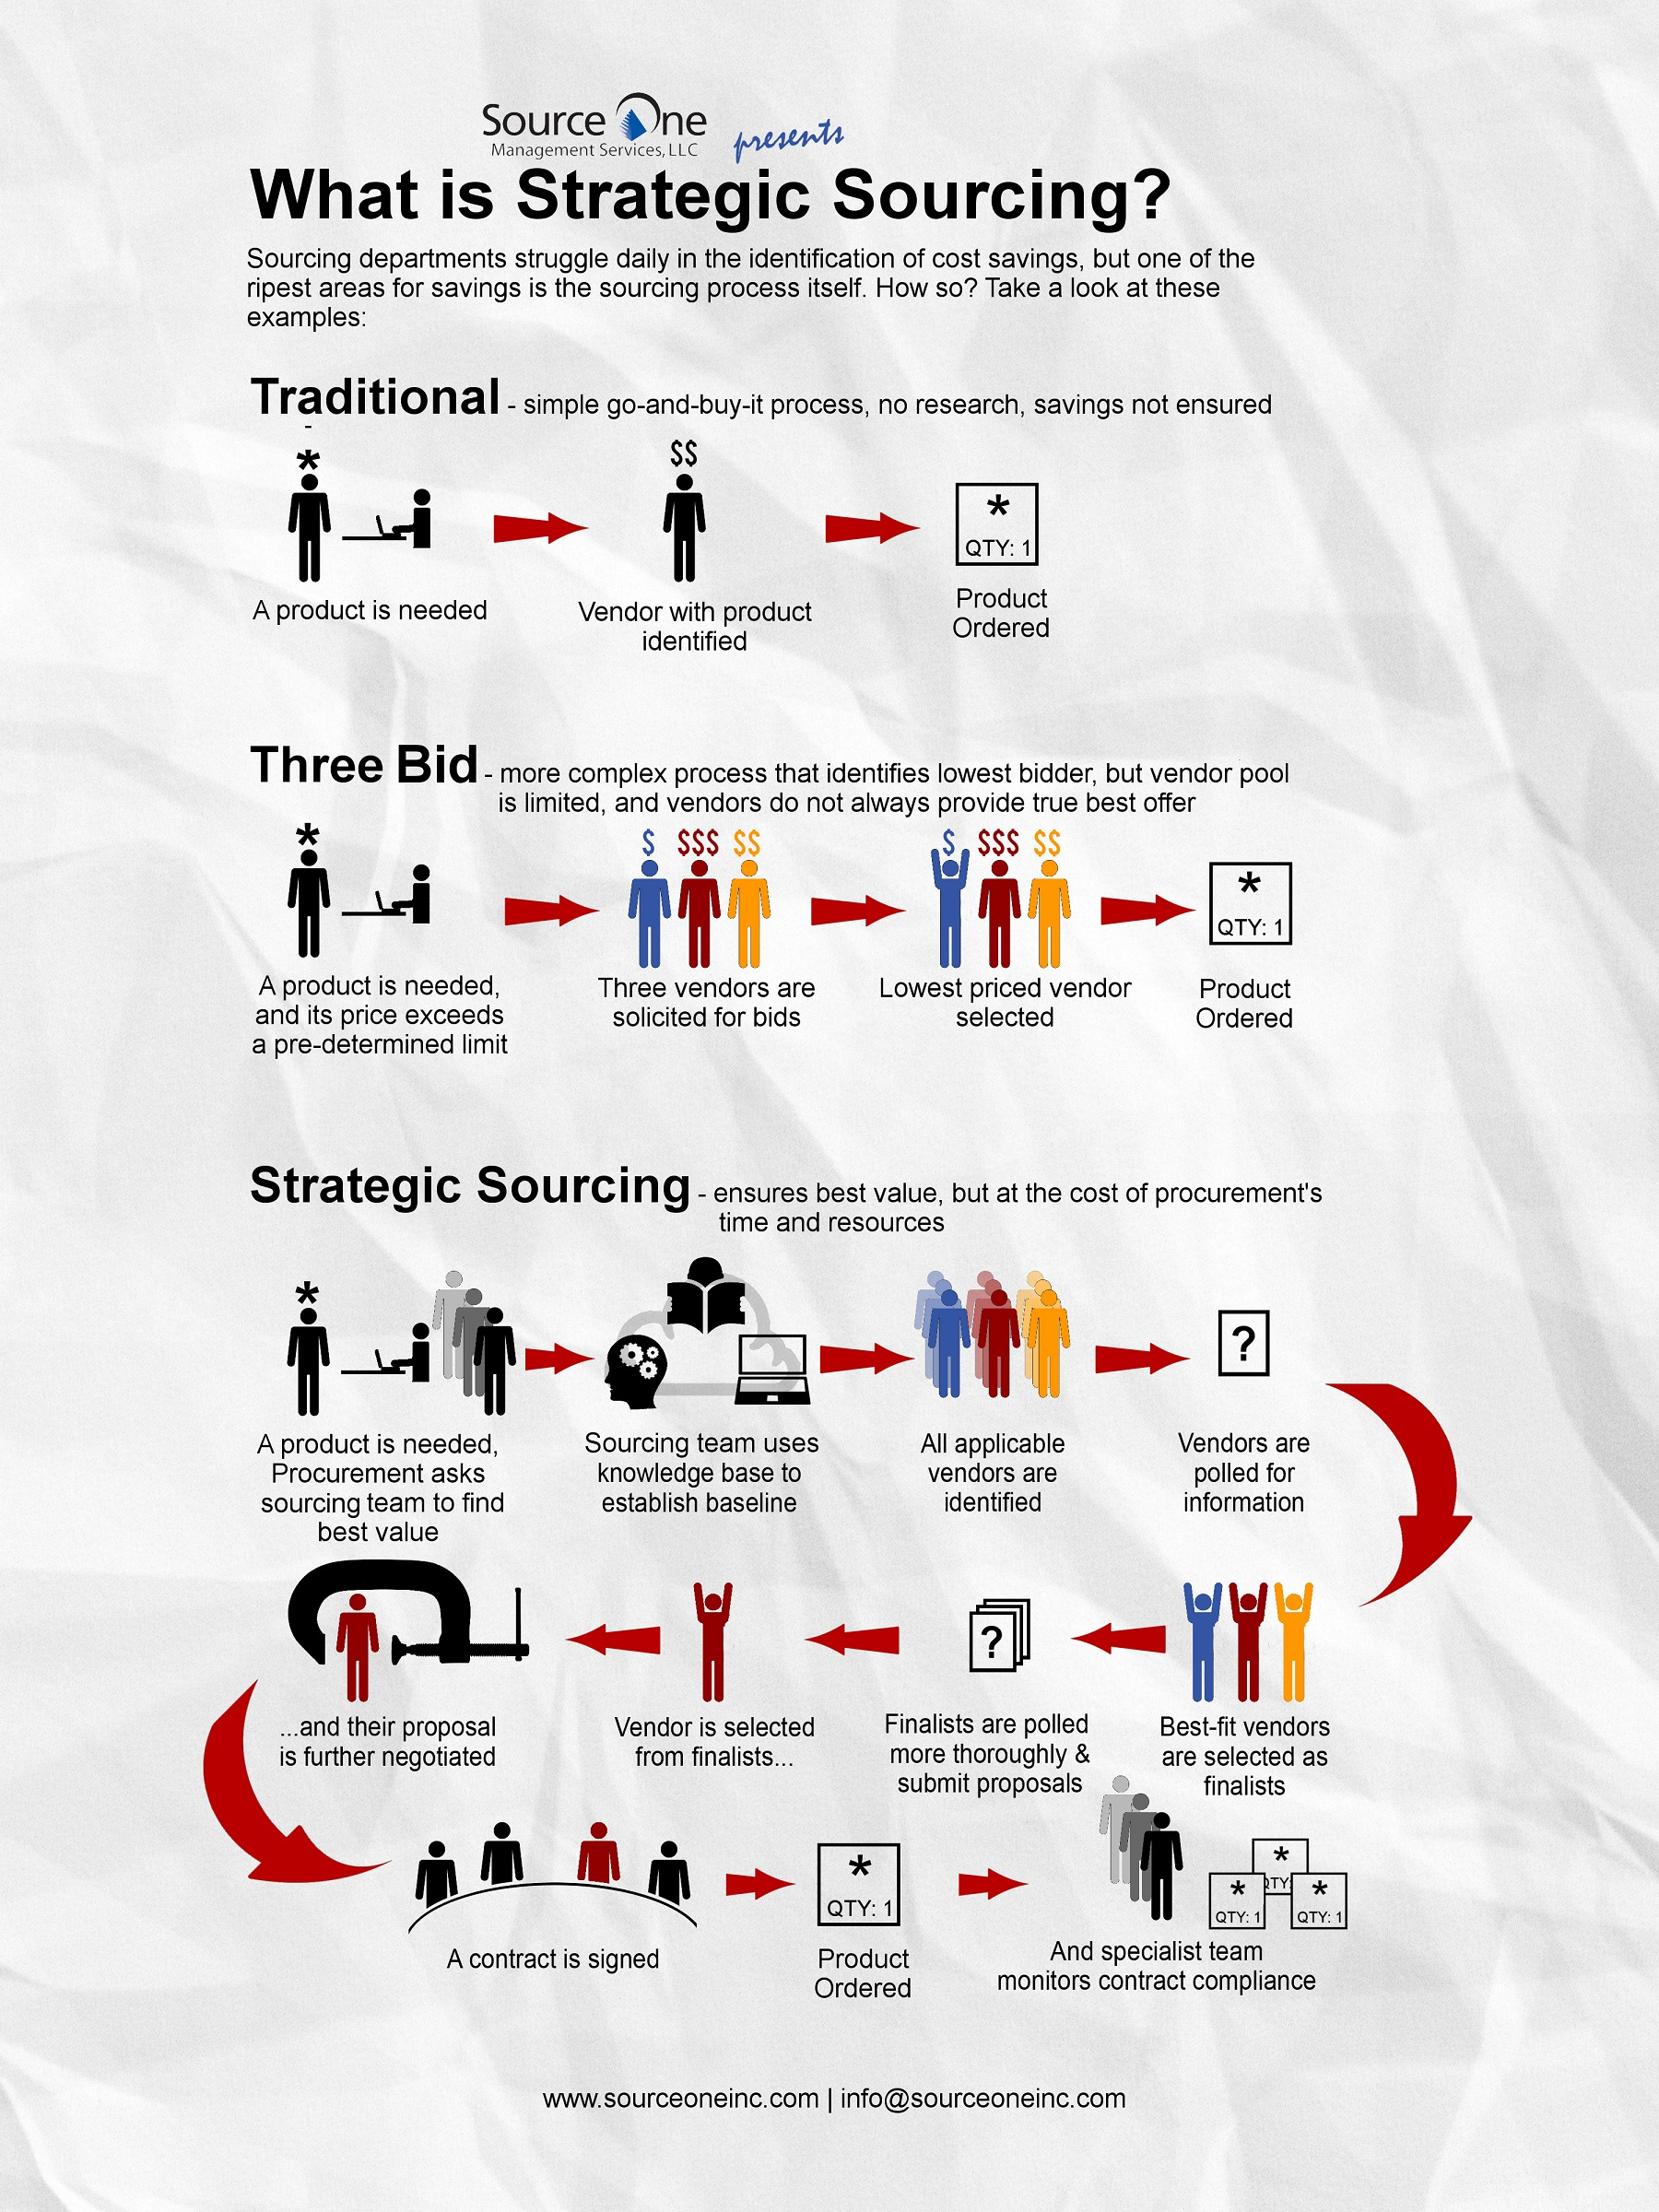 Infographic Source One Explains Strategic Sourcing